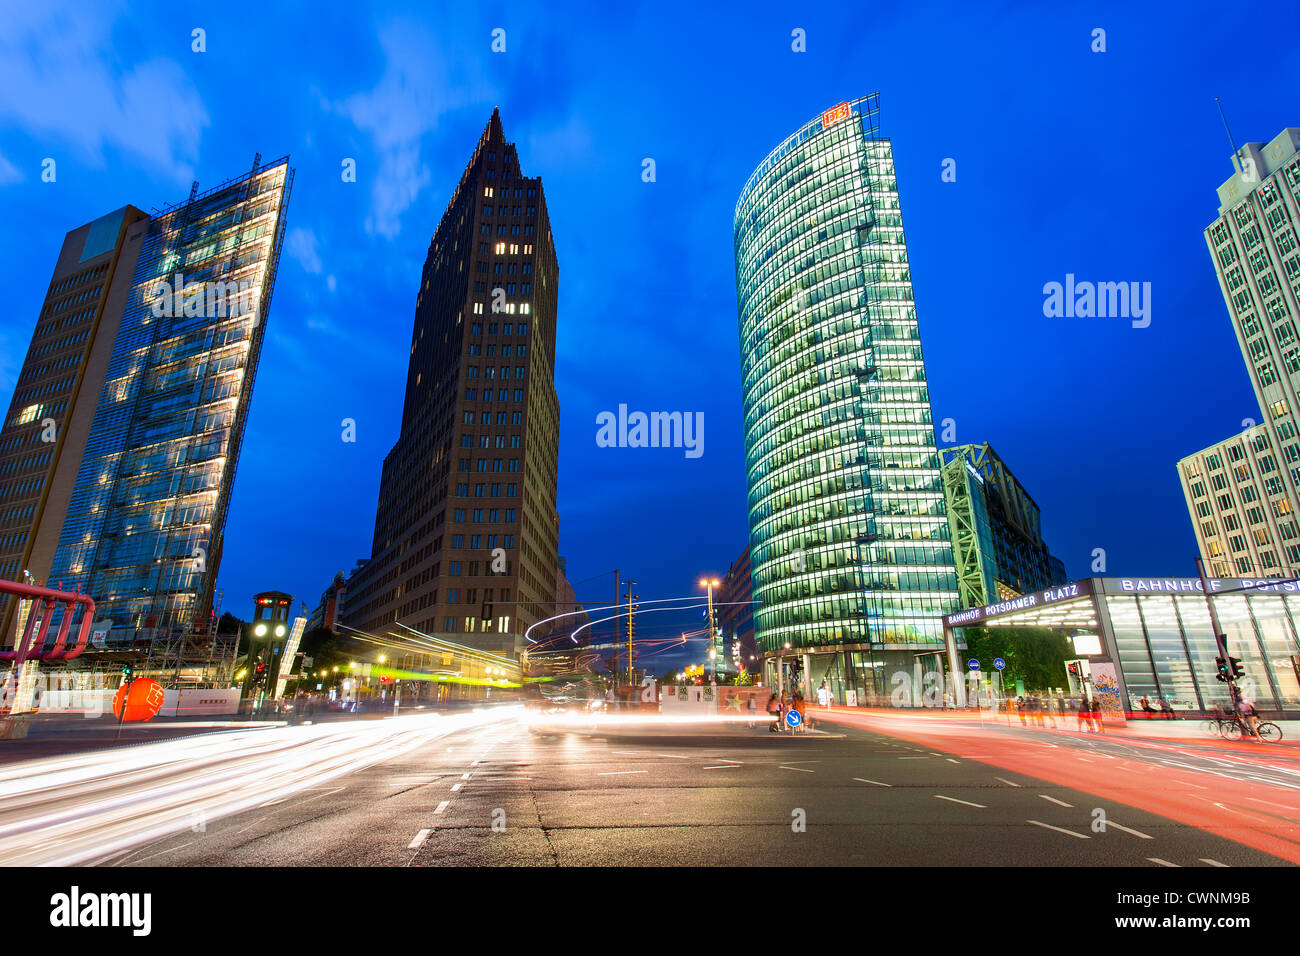 L'Europe, Allemagne, Berlin, Skyscrapers at Potsdamer Platz Photo Stock